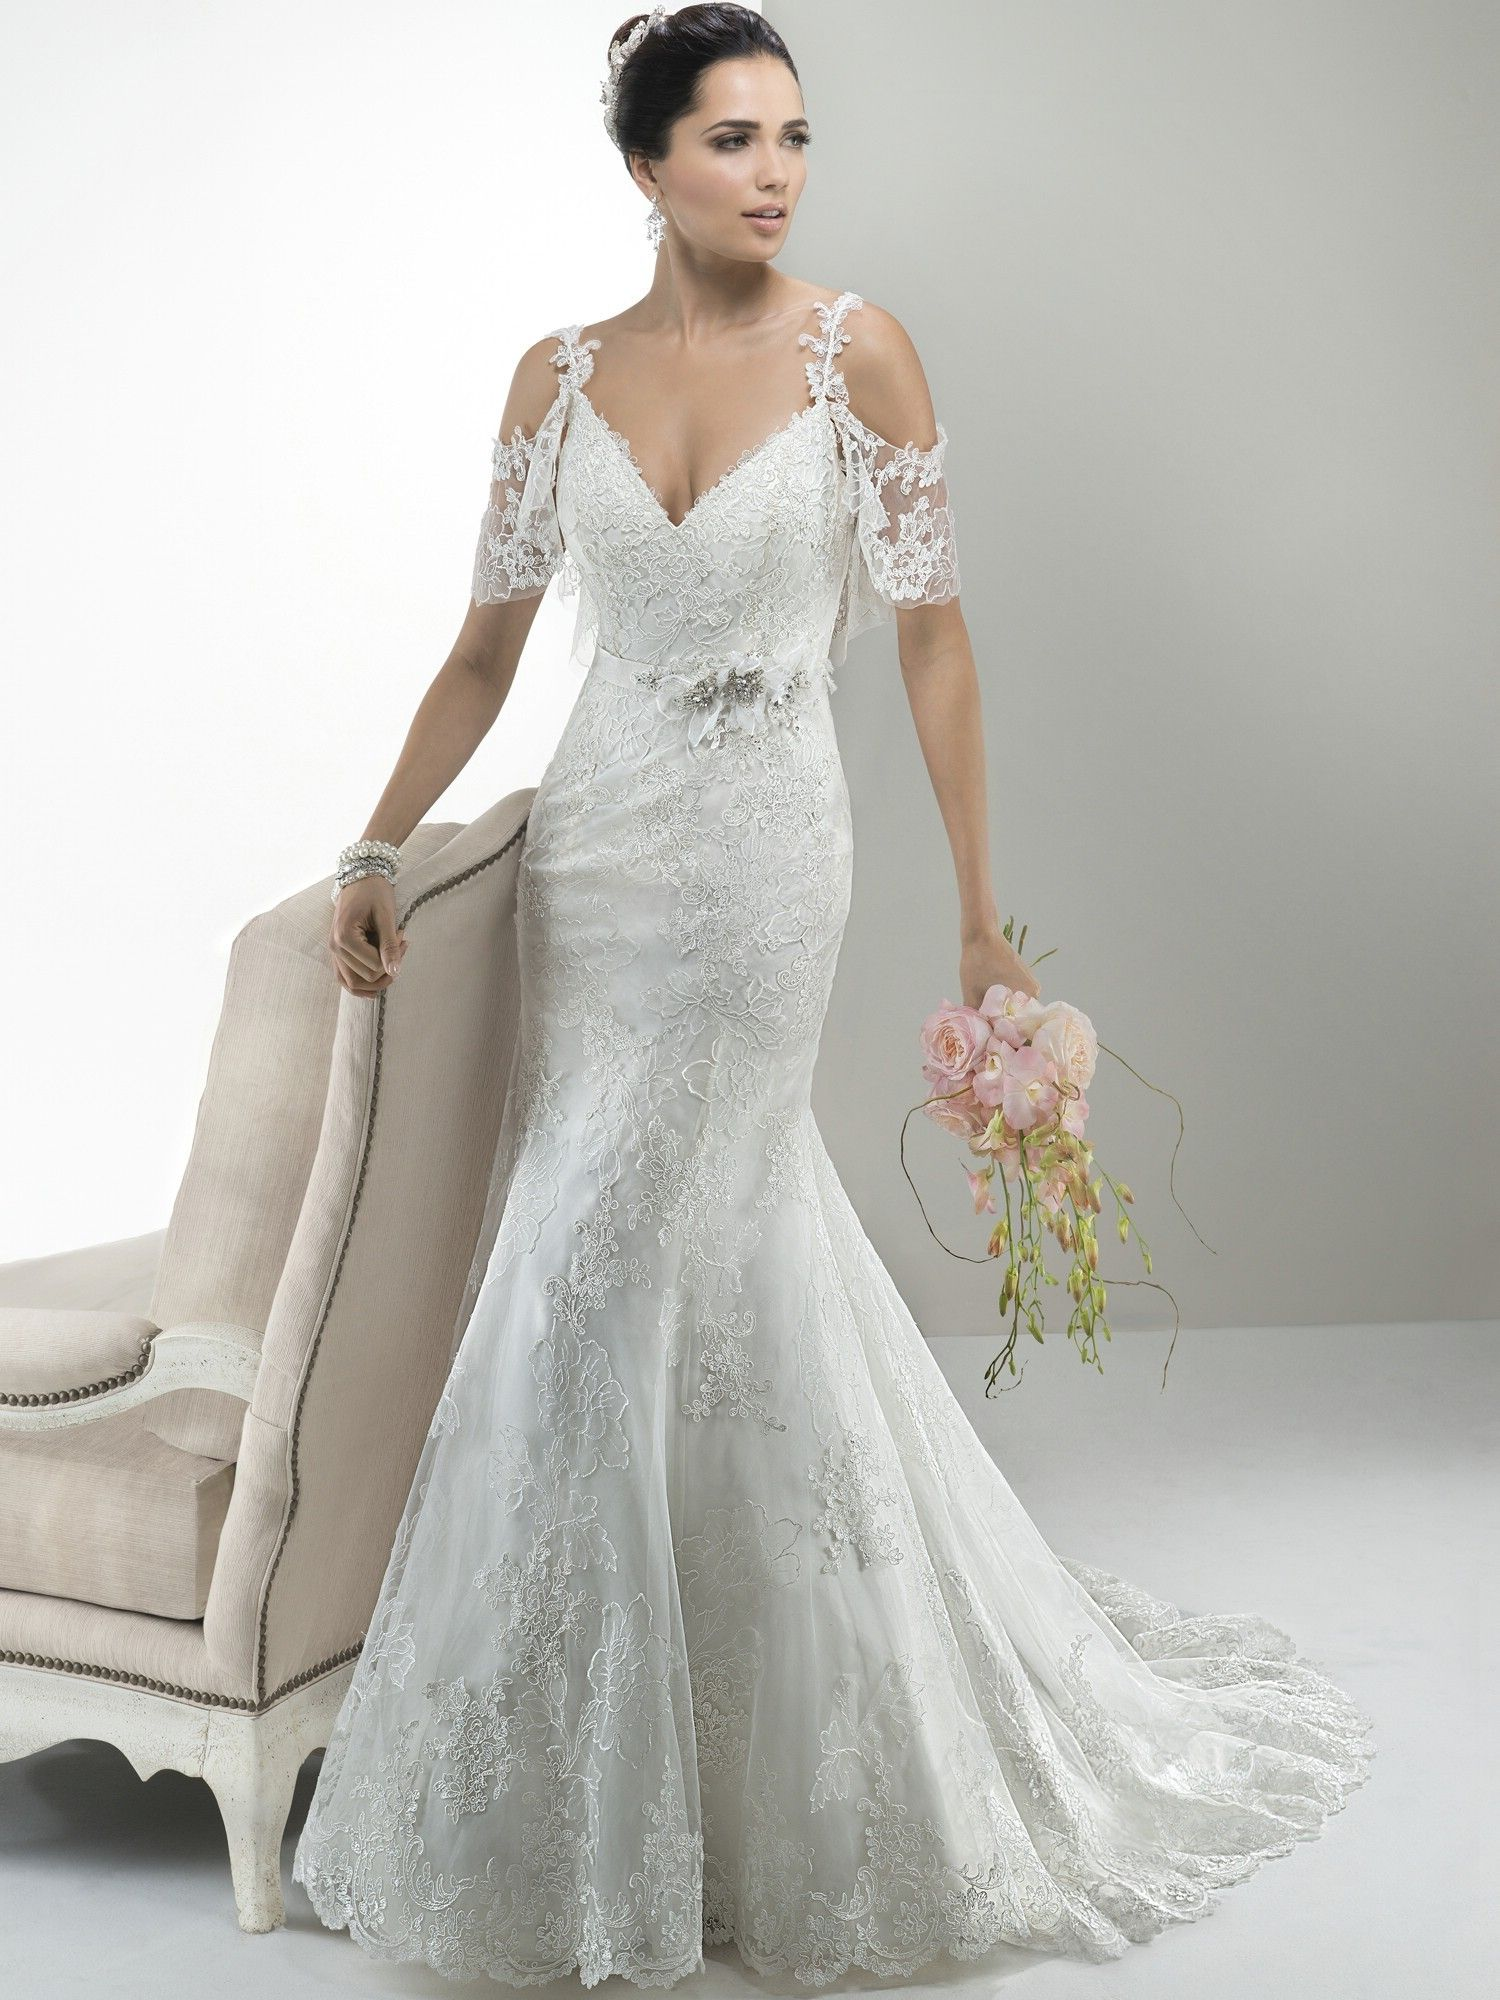 loving these peekaboo sleeves maggie sottero wedding dresses style anna 4ms9664ms966fb